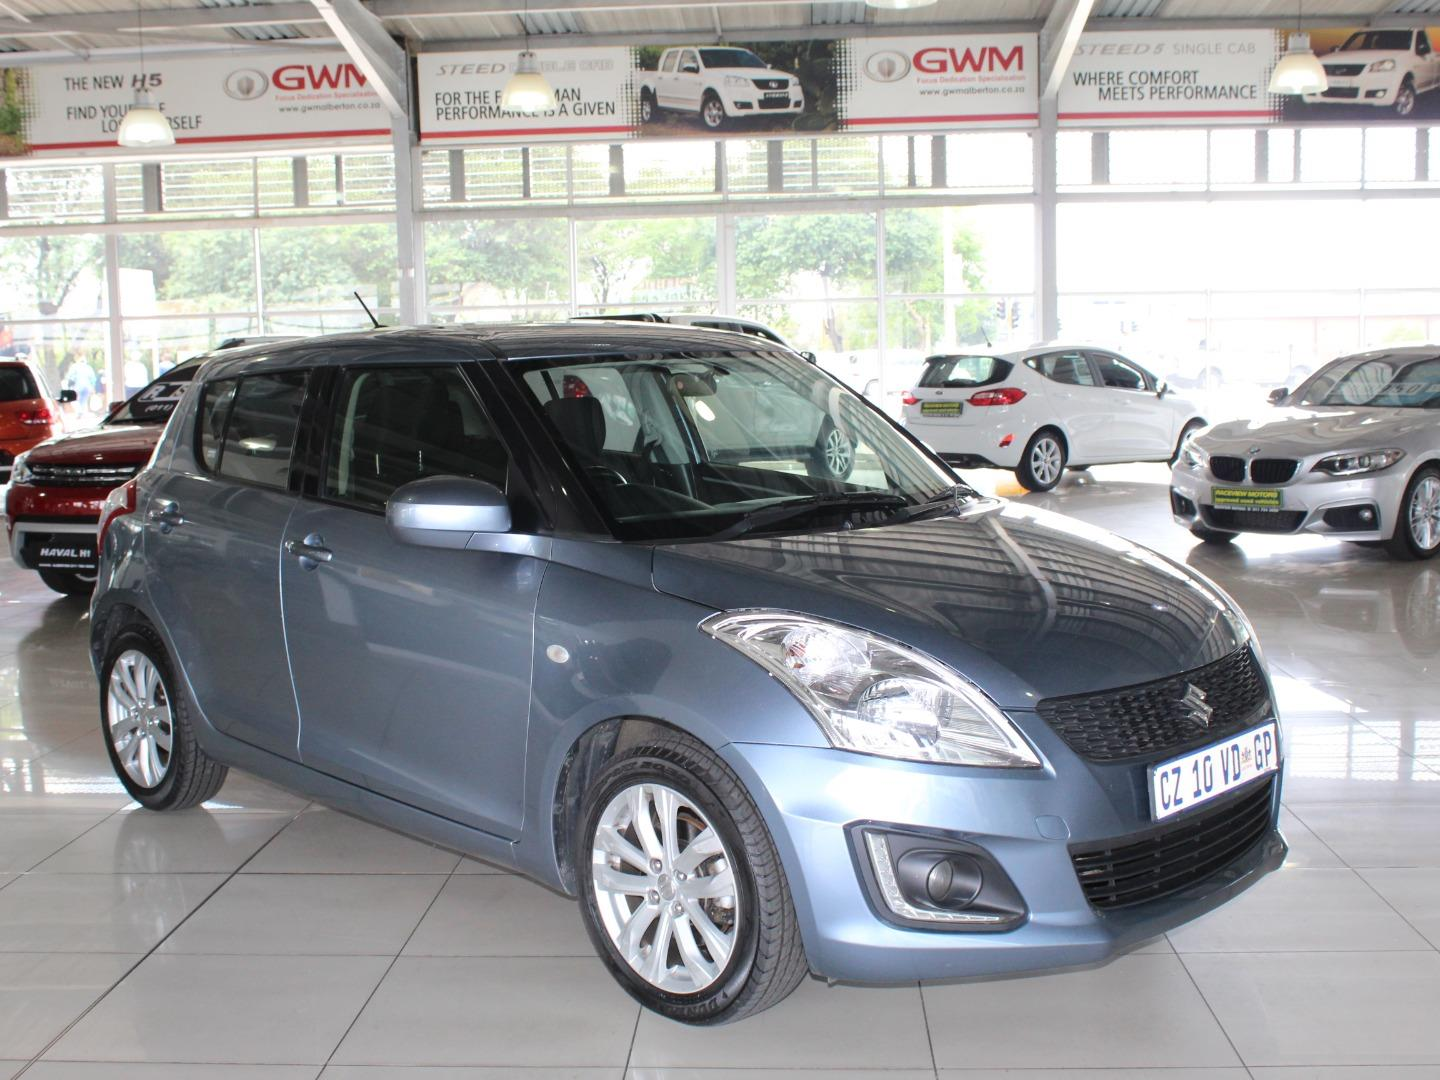 2014 Suzuki Swift Hatch 1.2 GL